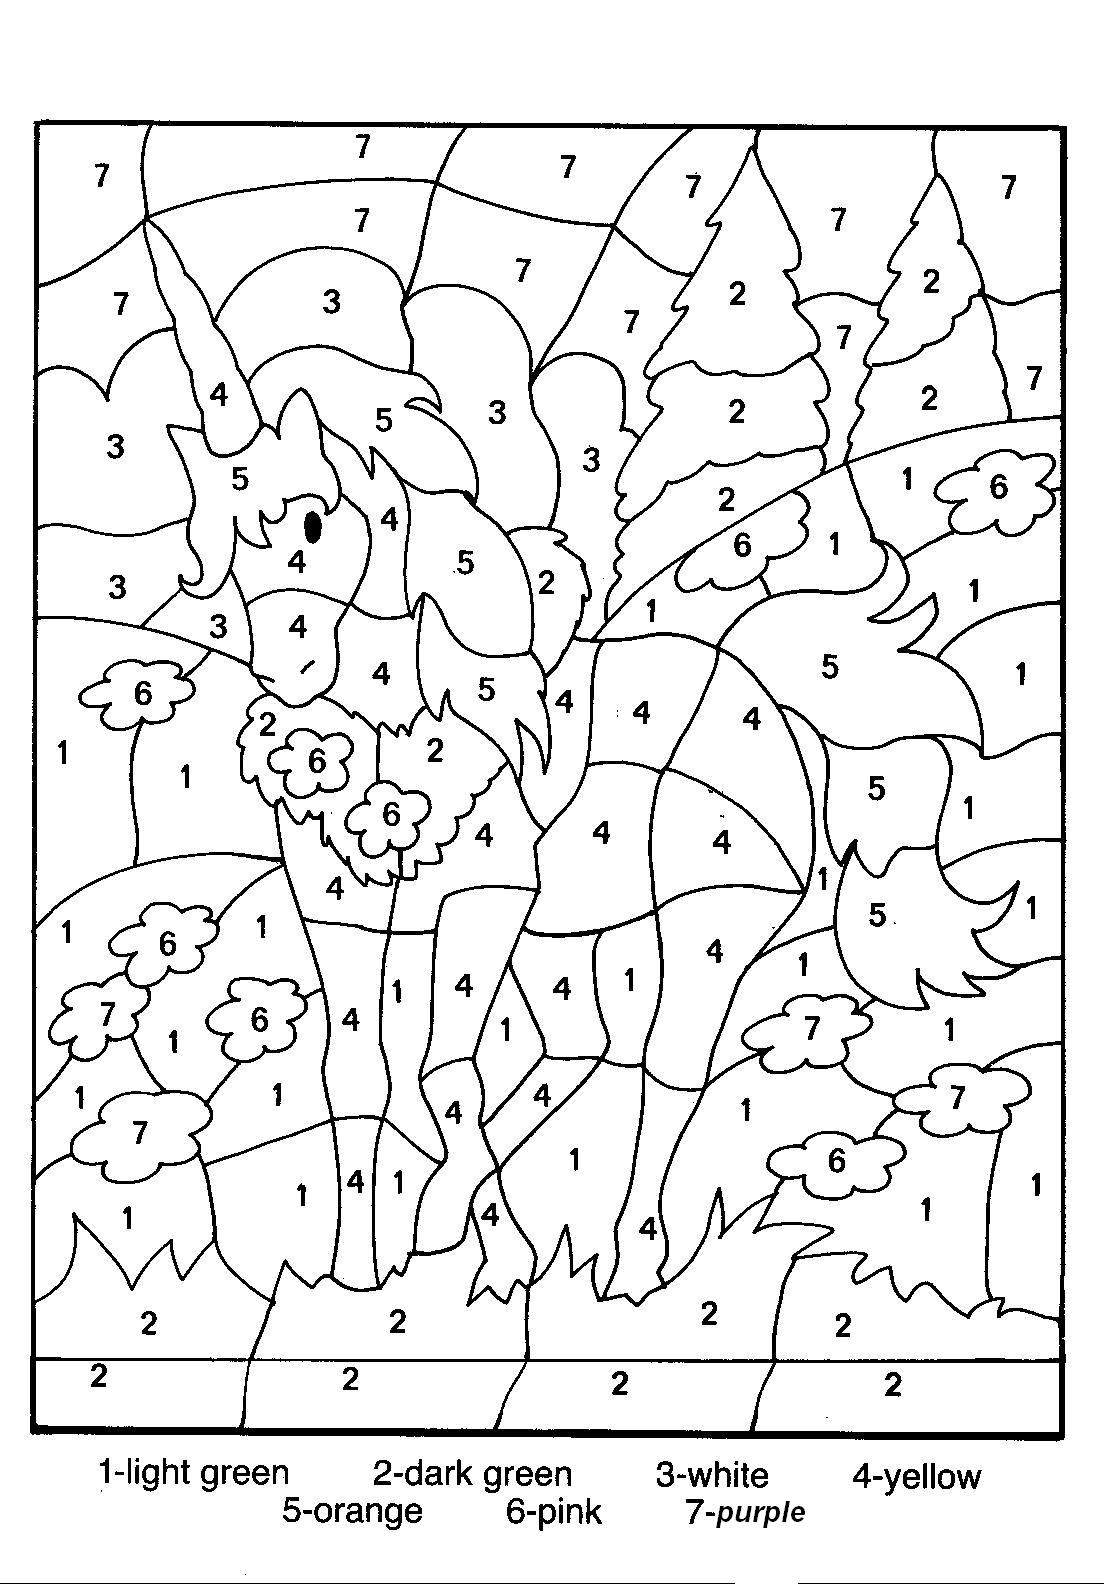 Number Coloring Pages (14) | Coloring Kids